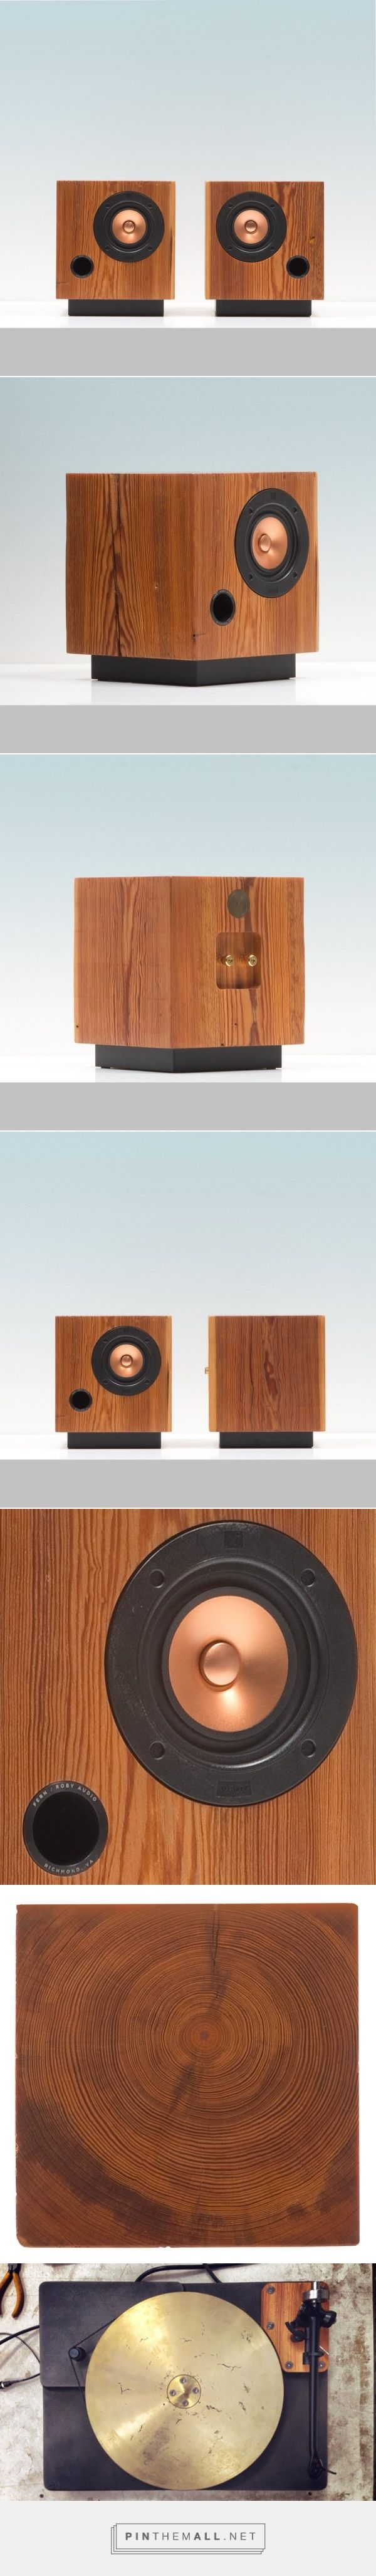 Fern & Roby Cube Speakers - Design Milk - created via http://pinthemall.net